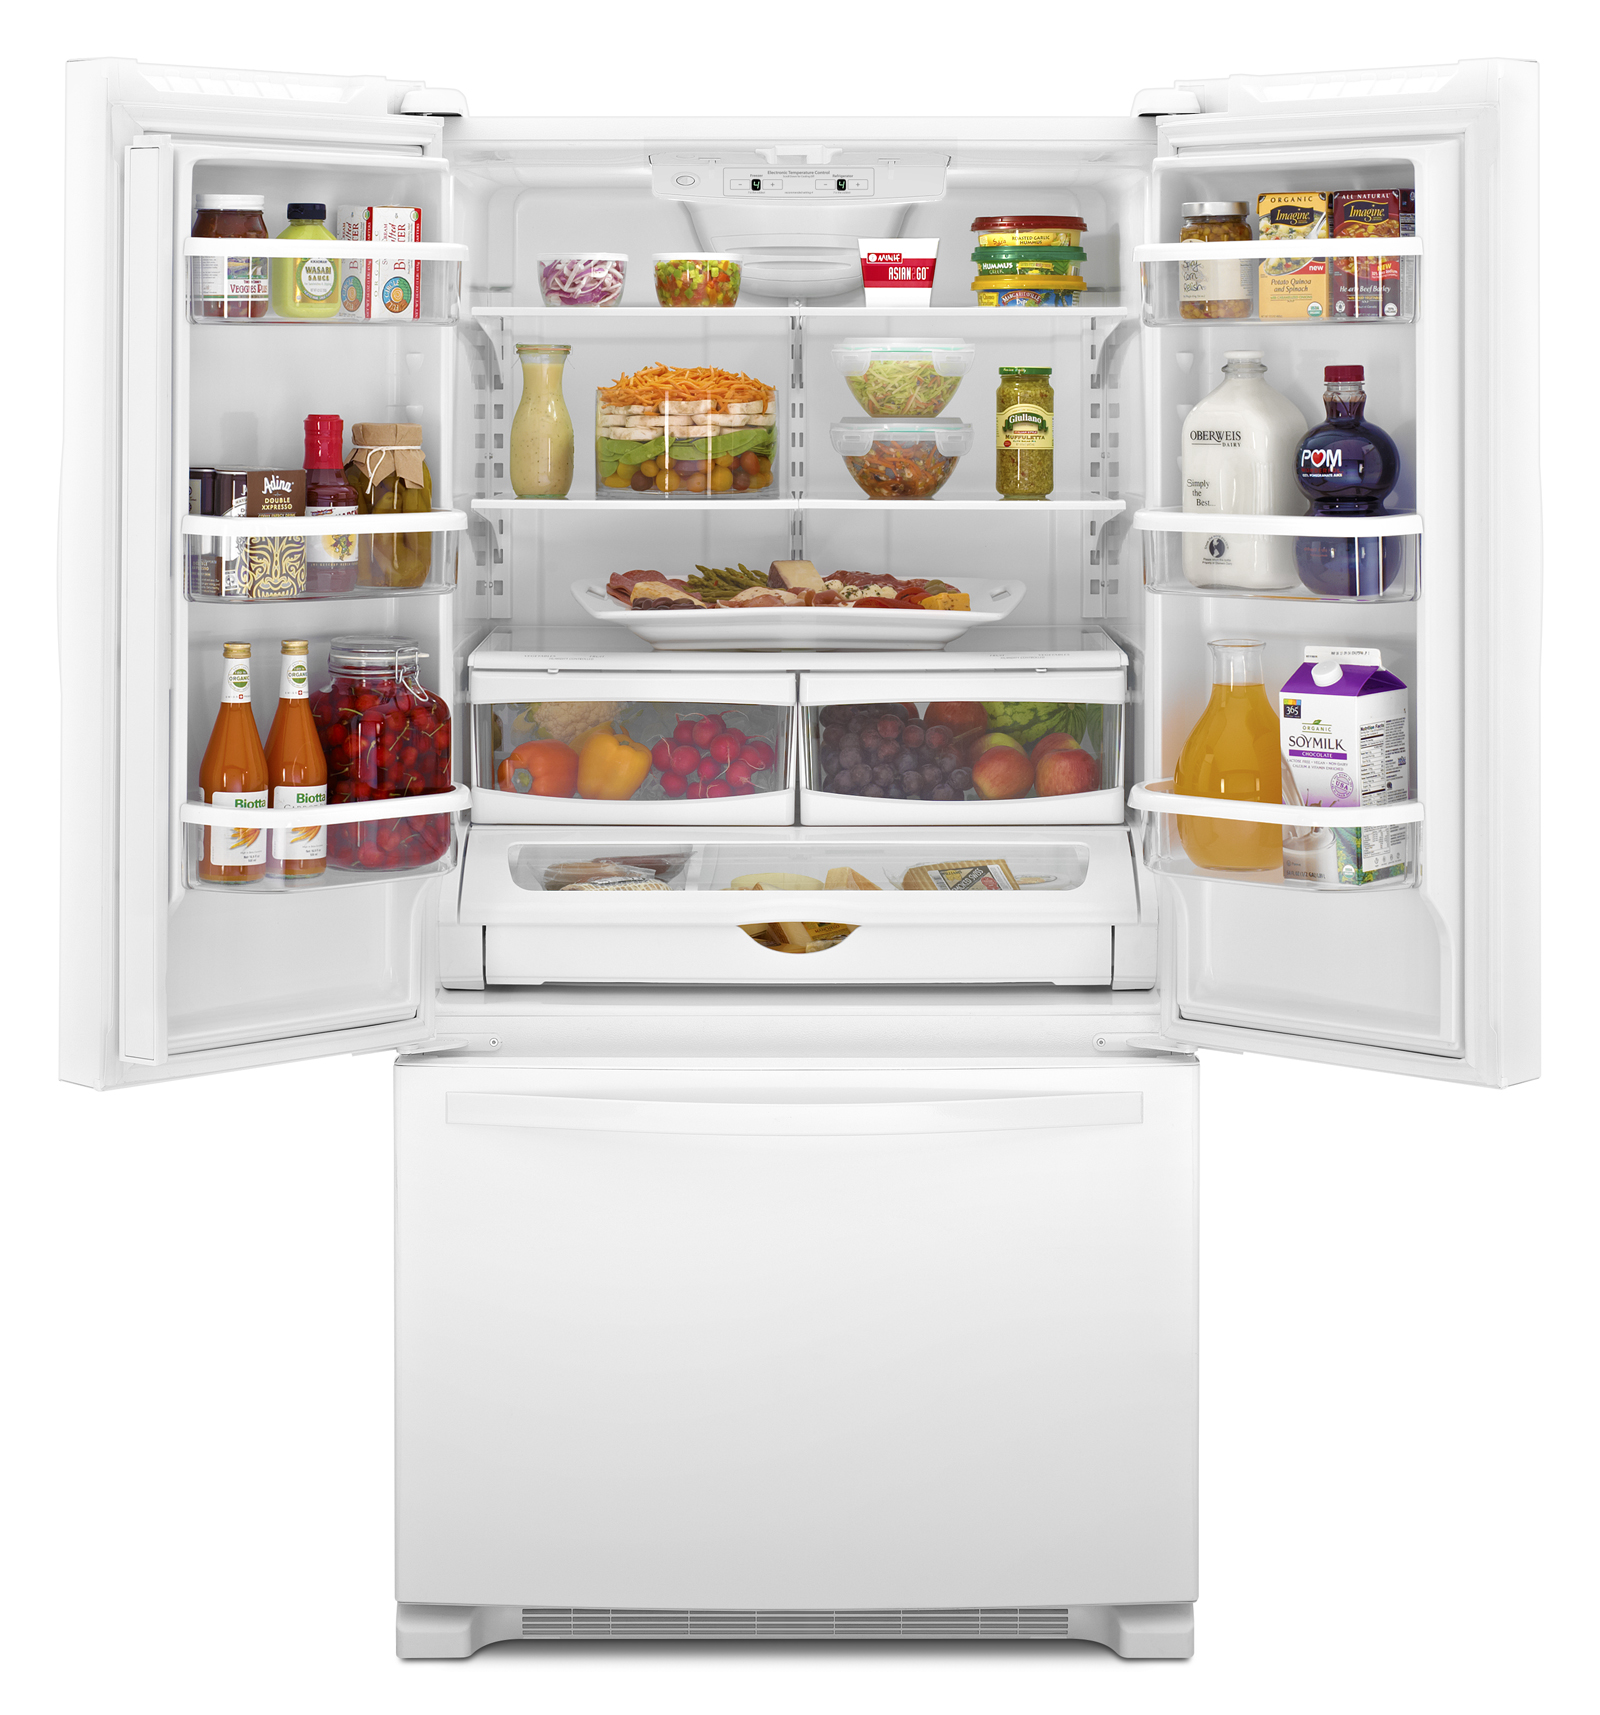 Whirlpool WRF535SMBW 25 cu. ft. French Door Refrigerator  - White